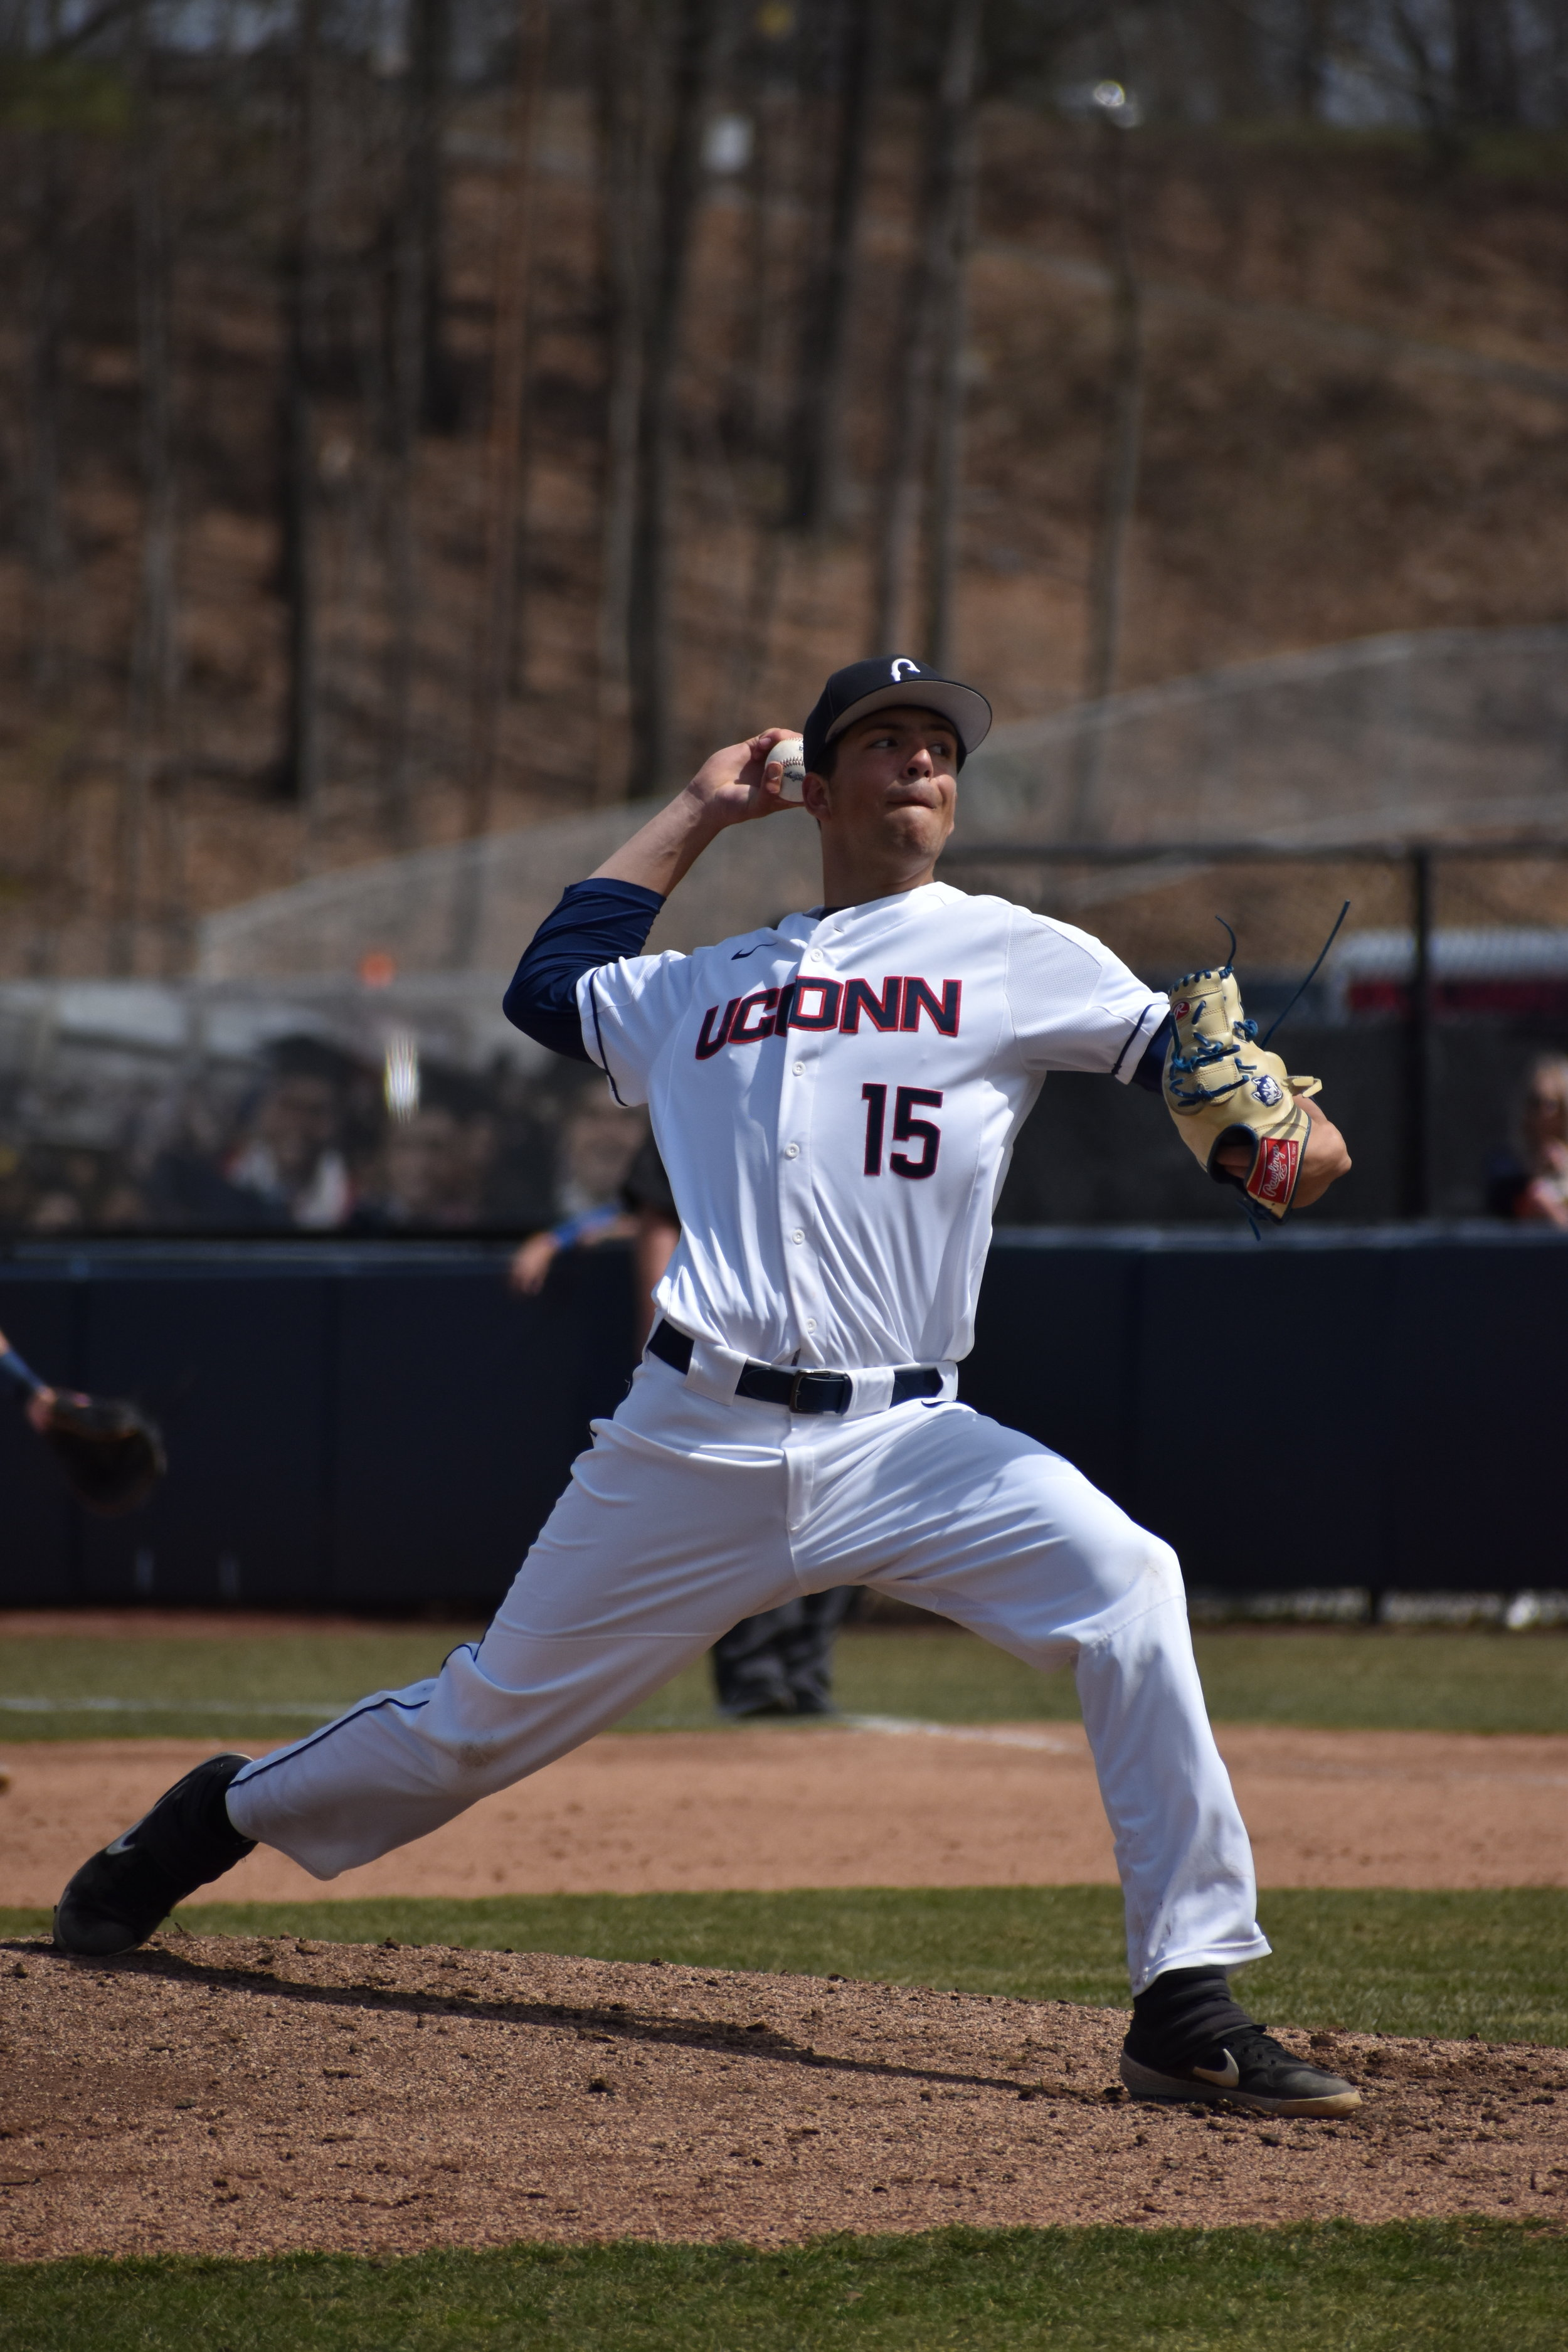 Karl Johnson throws a pitch in UConn's weekend series. (Kevin Lindstrom/The Daily Campus)